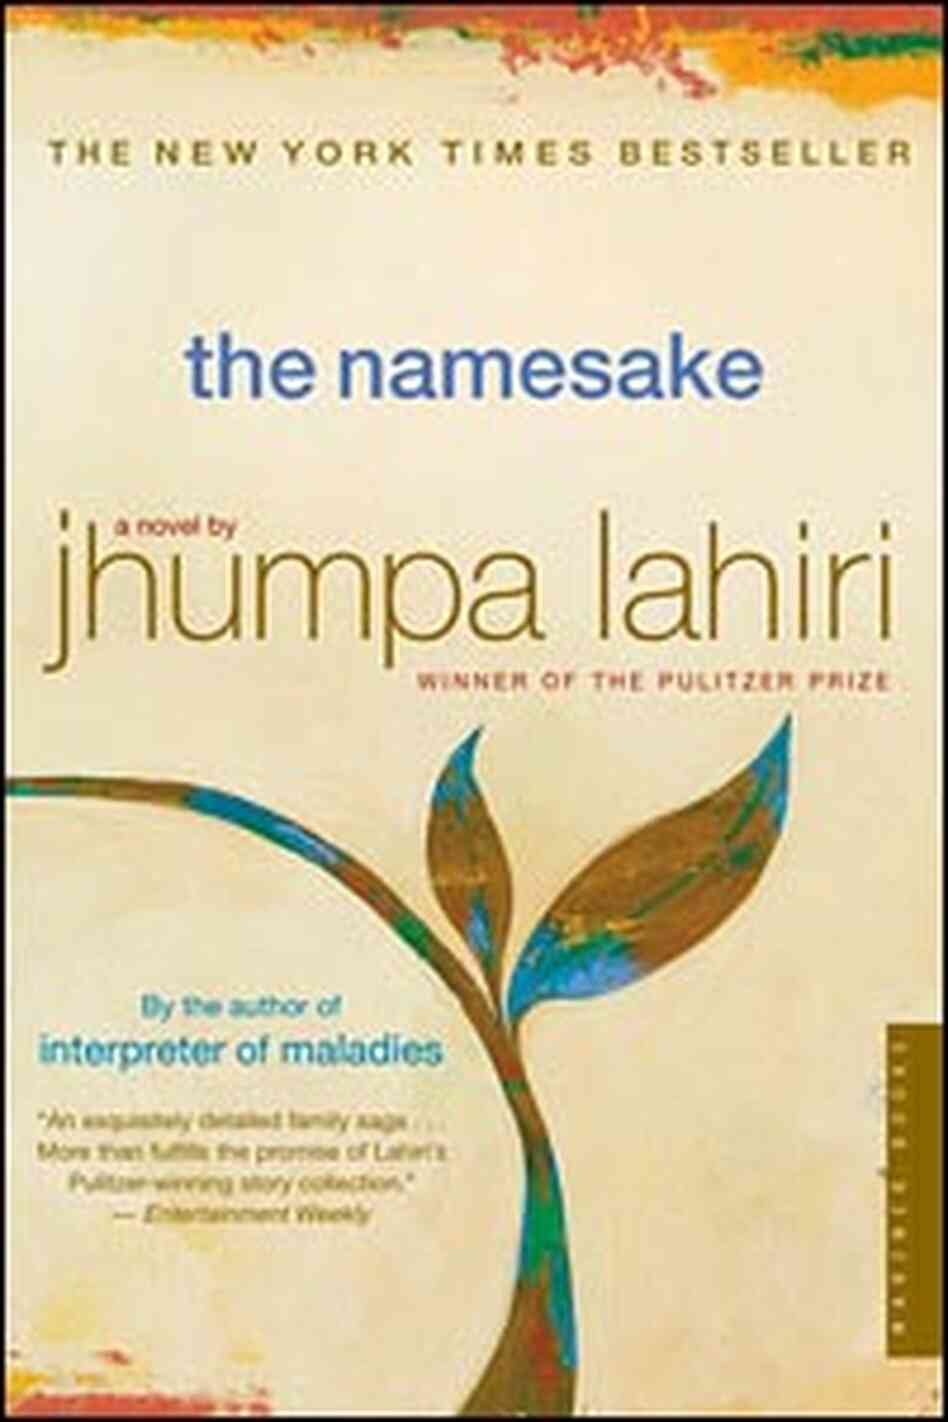 'The Namesake' by Jhumpa Lahiri